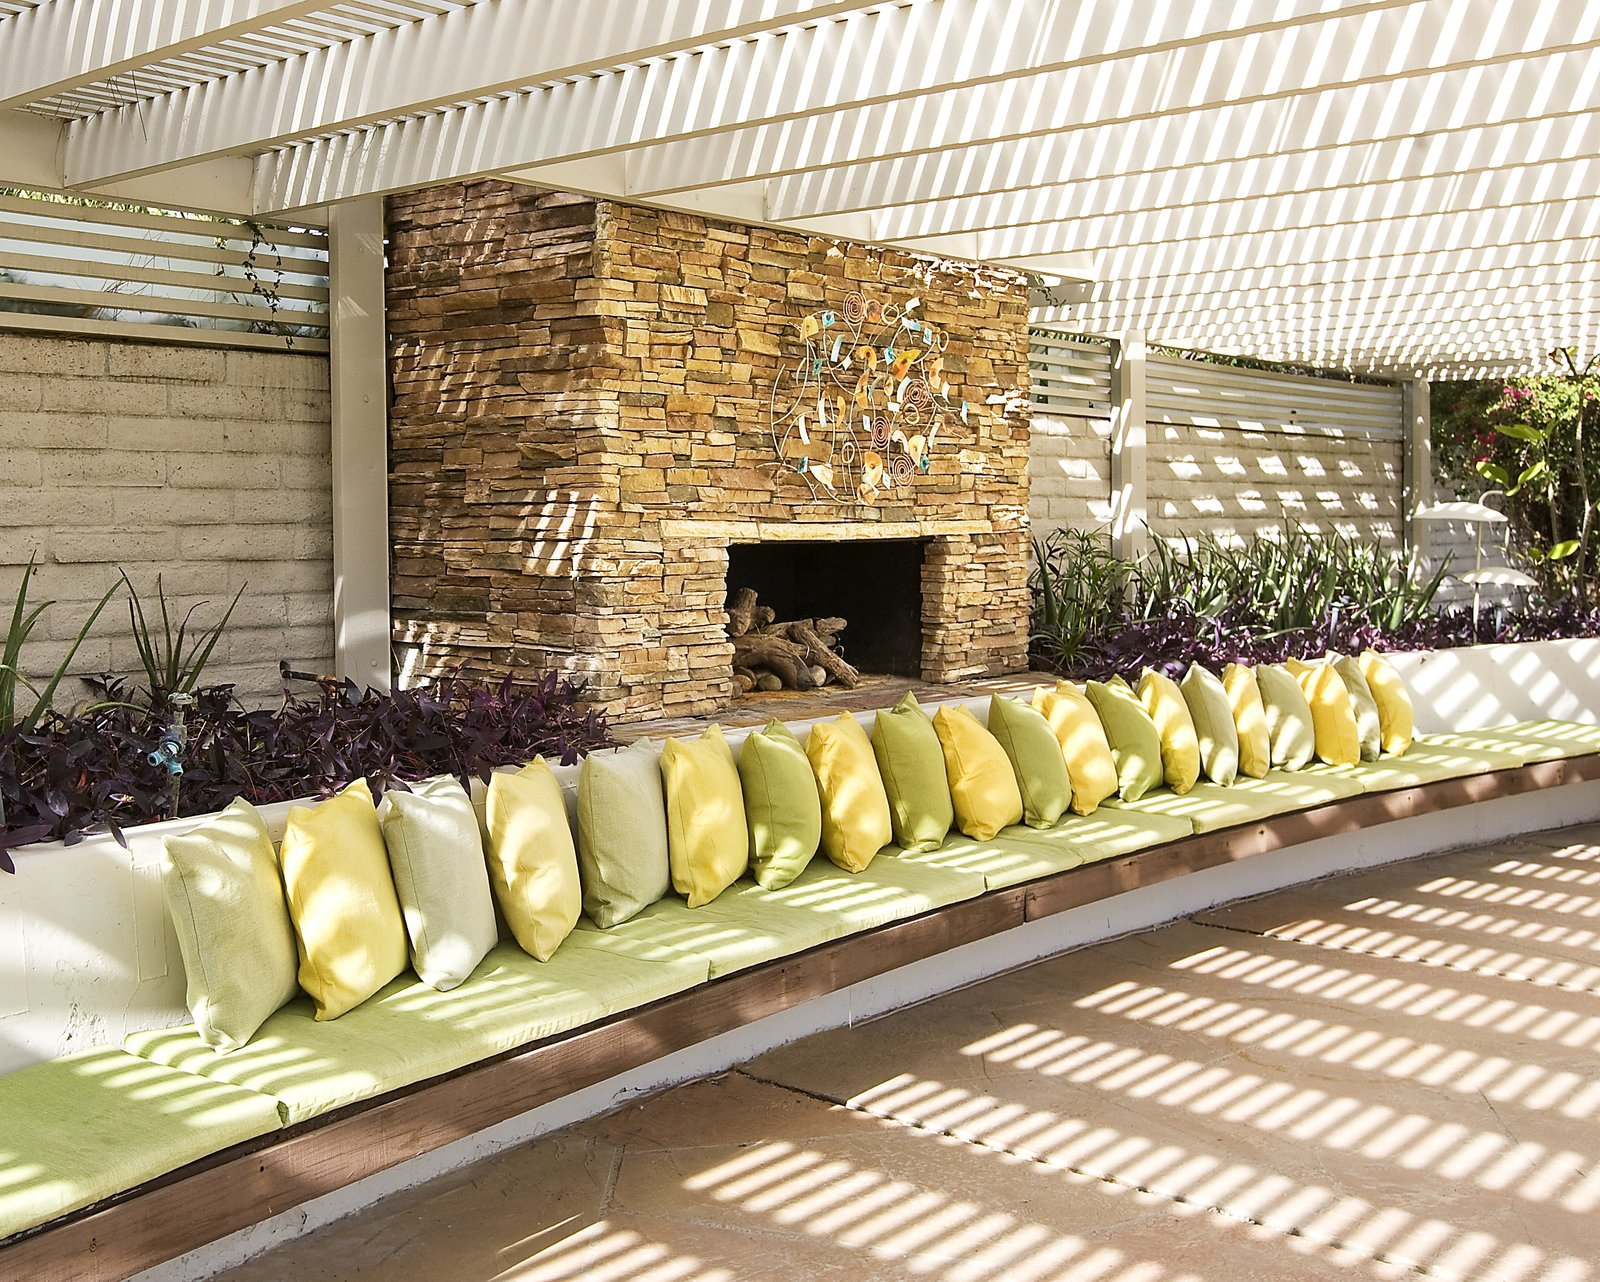 The stacked stone fireplace is perfect for entertaining on cool desert nights.